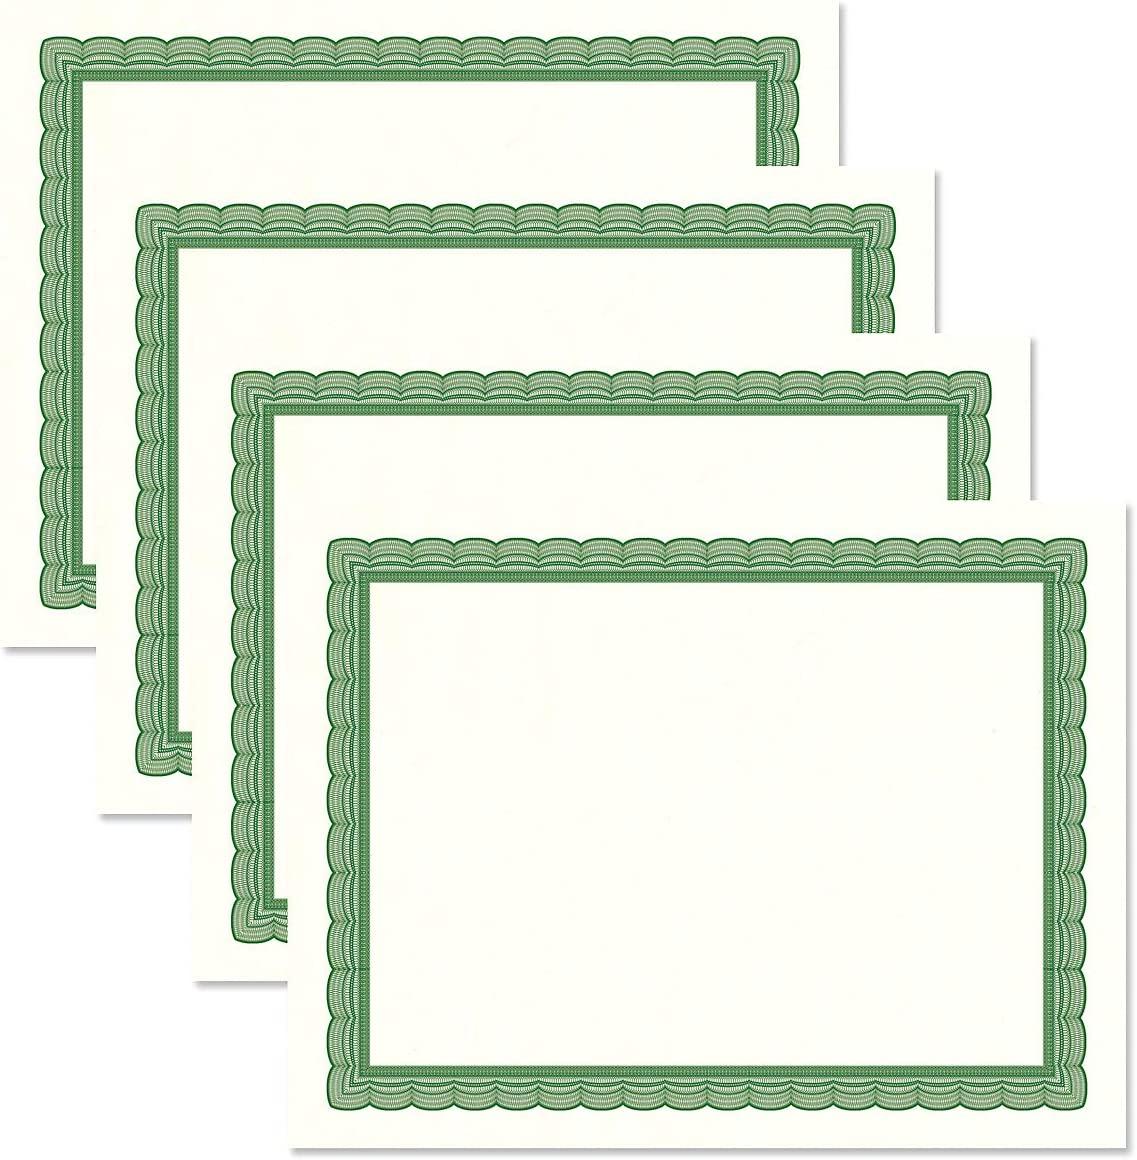 8-1//2 x 11 on 60 lb Laser /& Inkjet Printer Compatible Business Awards Executive Green /& White Parchment Certificate Papers Graduation for Office Pack of 100 Stock School Diplomas